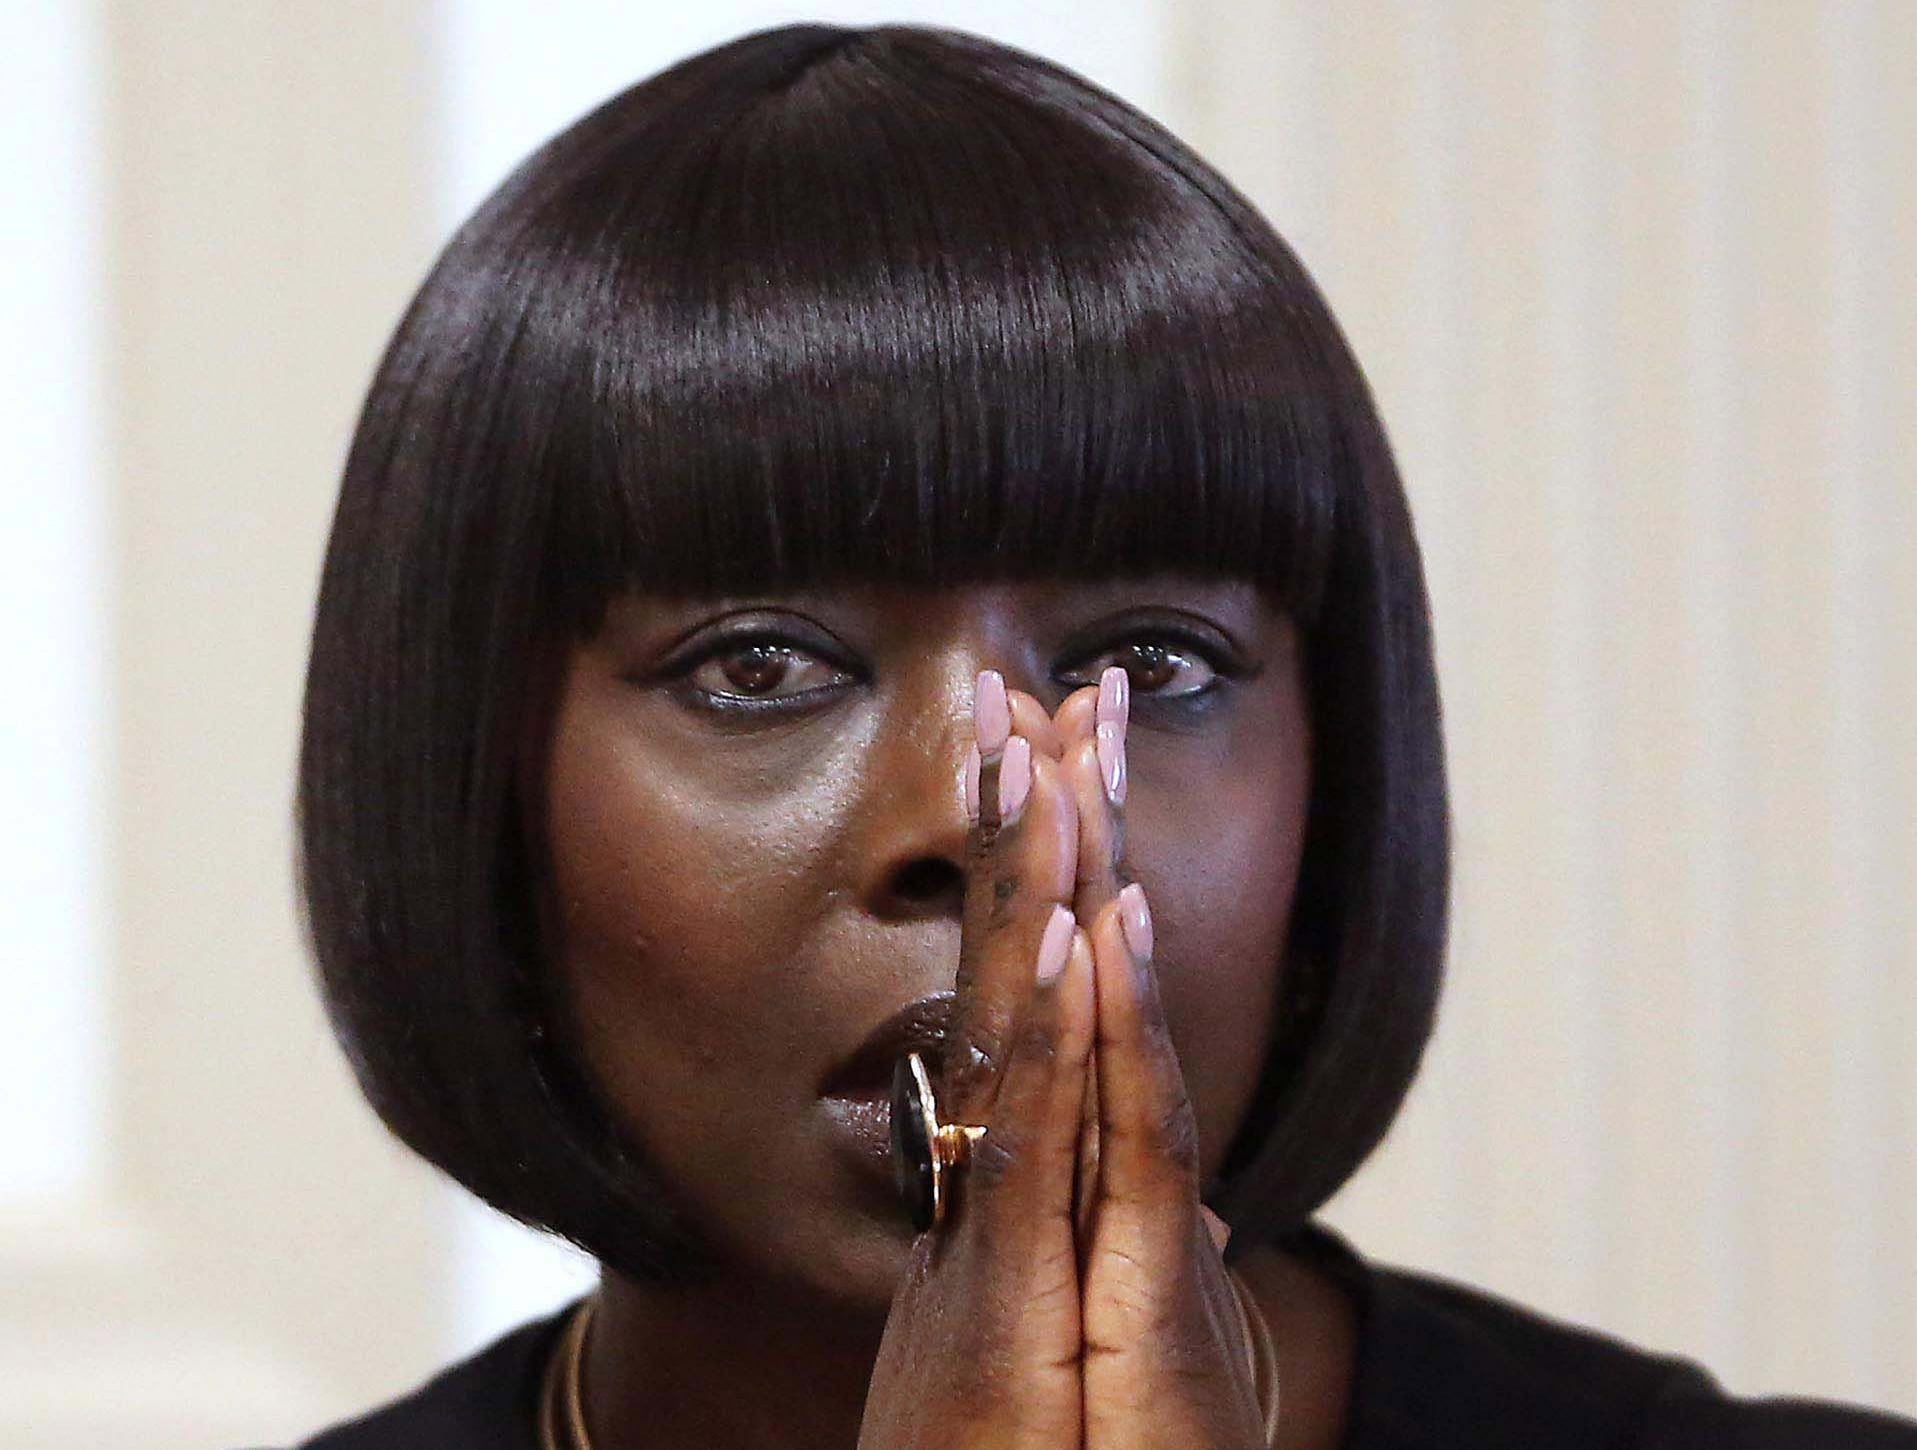 April 25, 2017--Mignone Njie, mother of Francis Thomas grasps her hand together in prayer as she is asked about the day of a violent struggle with her ex-boyfriend Edward Mendy. Her son, Francis Thomas is on trial for attempted murder of Mendy.